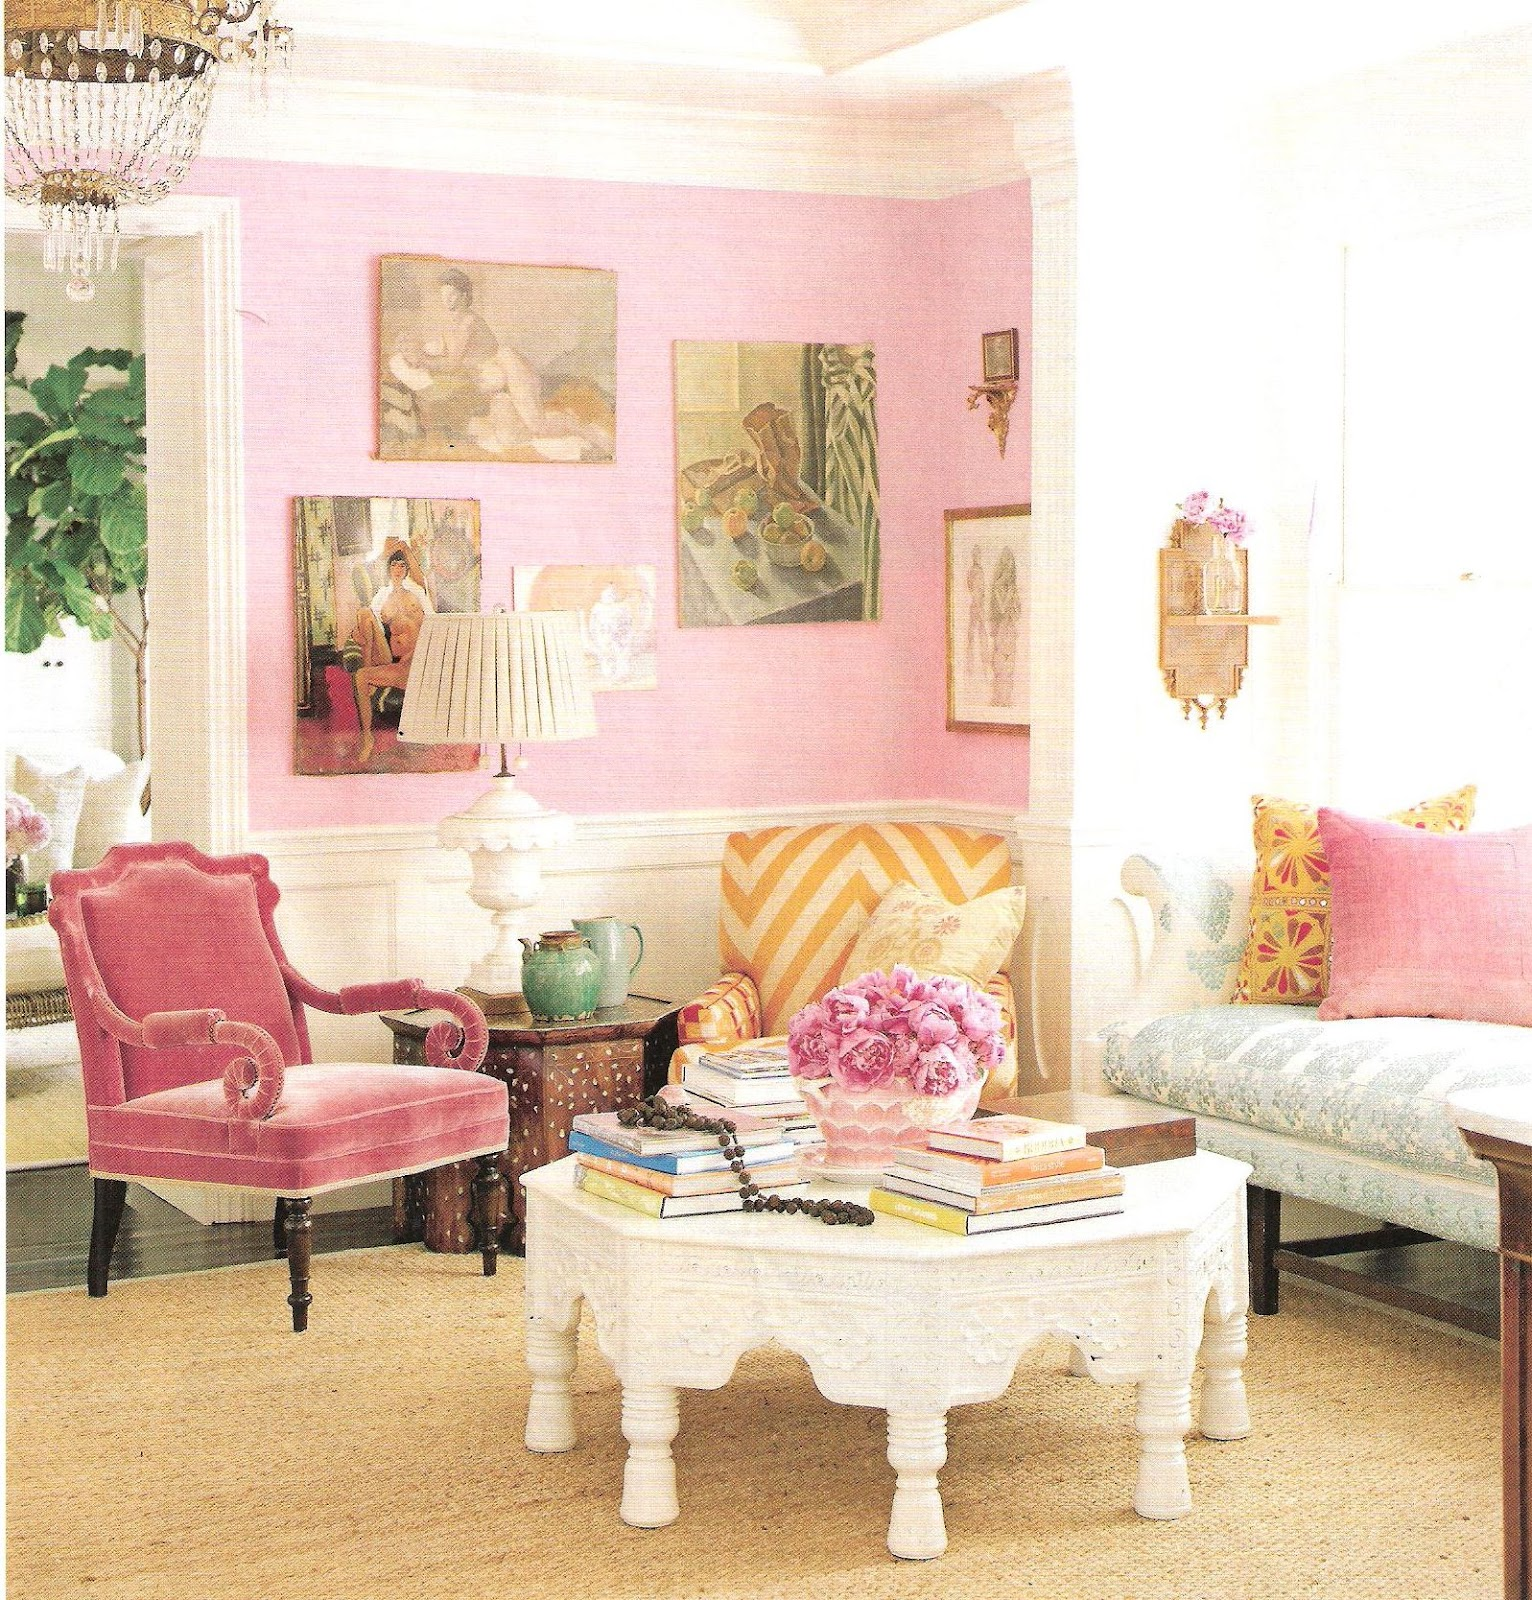 Design and decorating harmonique style april 2012 - Pink and gold living room ...